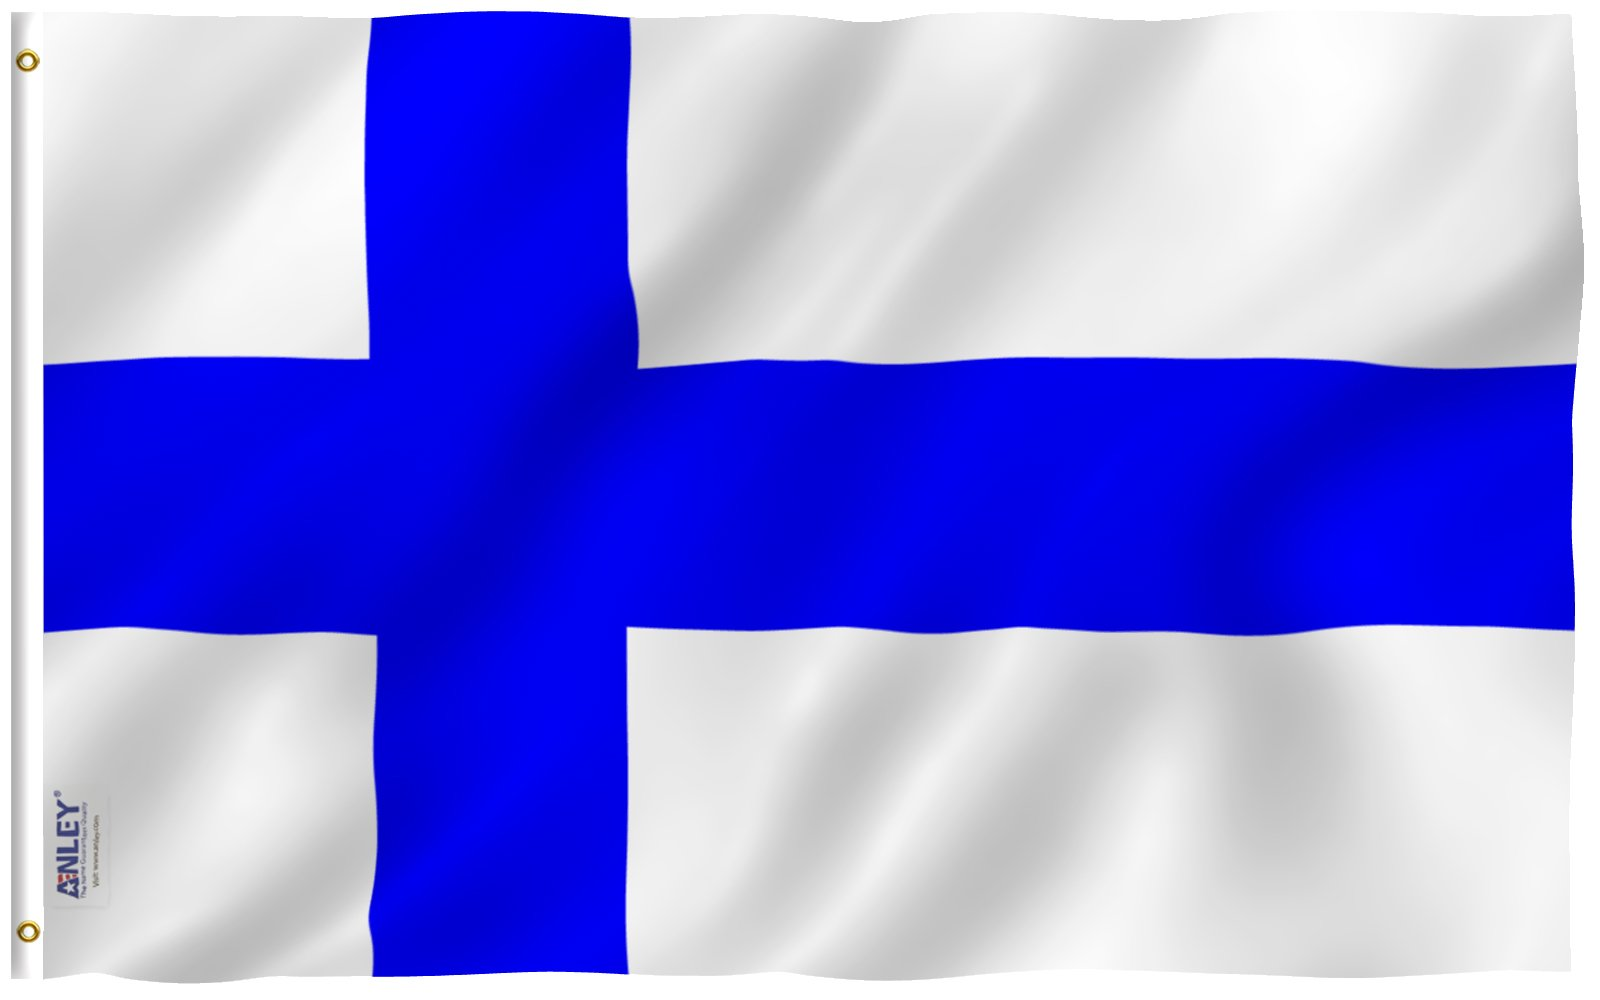 Amazon.com: 40 Tattoos: Finnish Flag, Finland Party Favors: Health & Personal Care